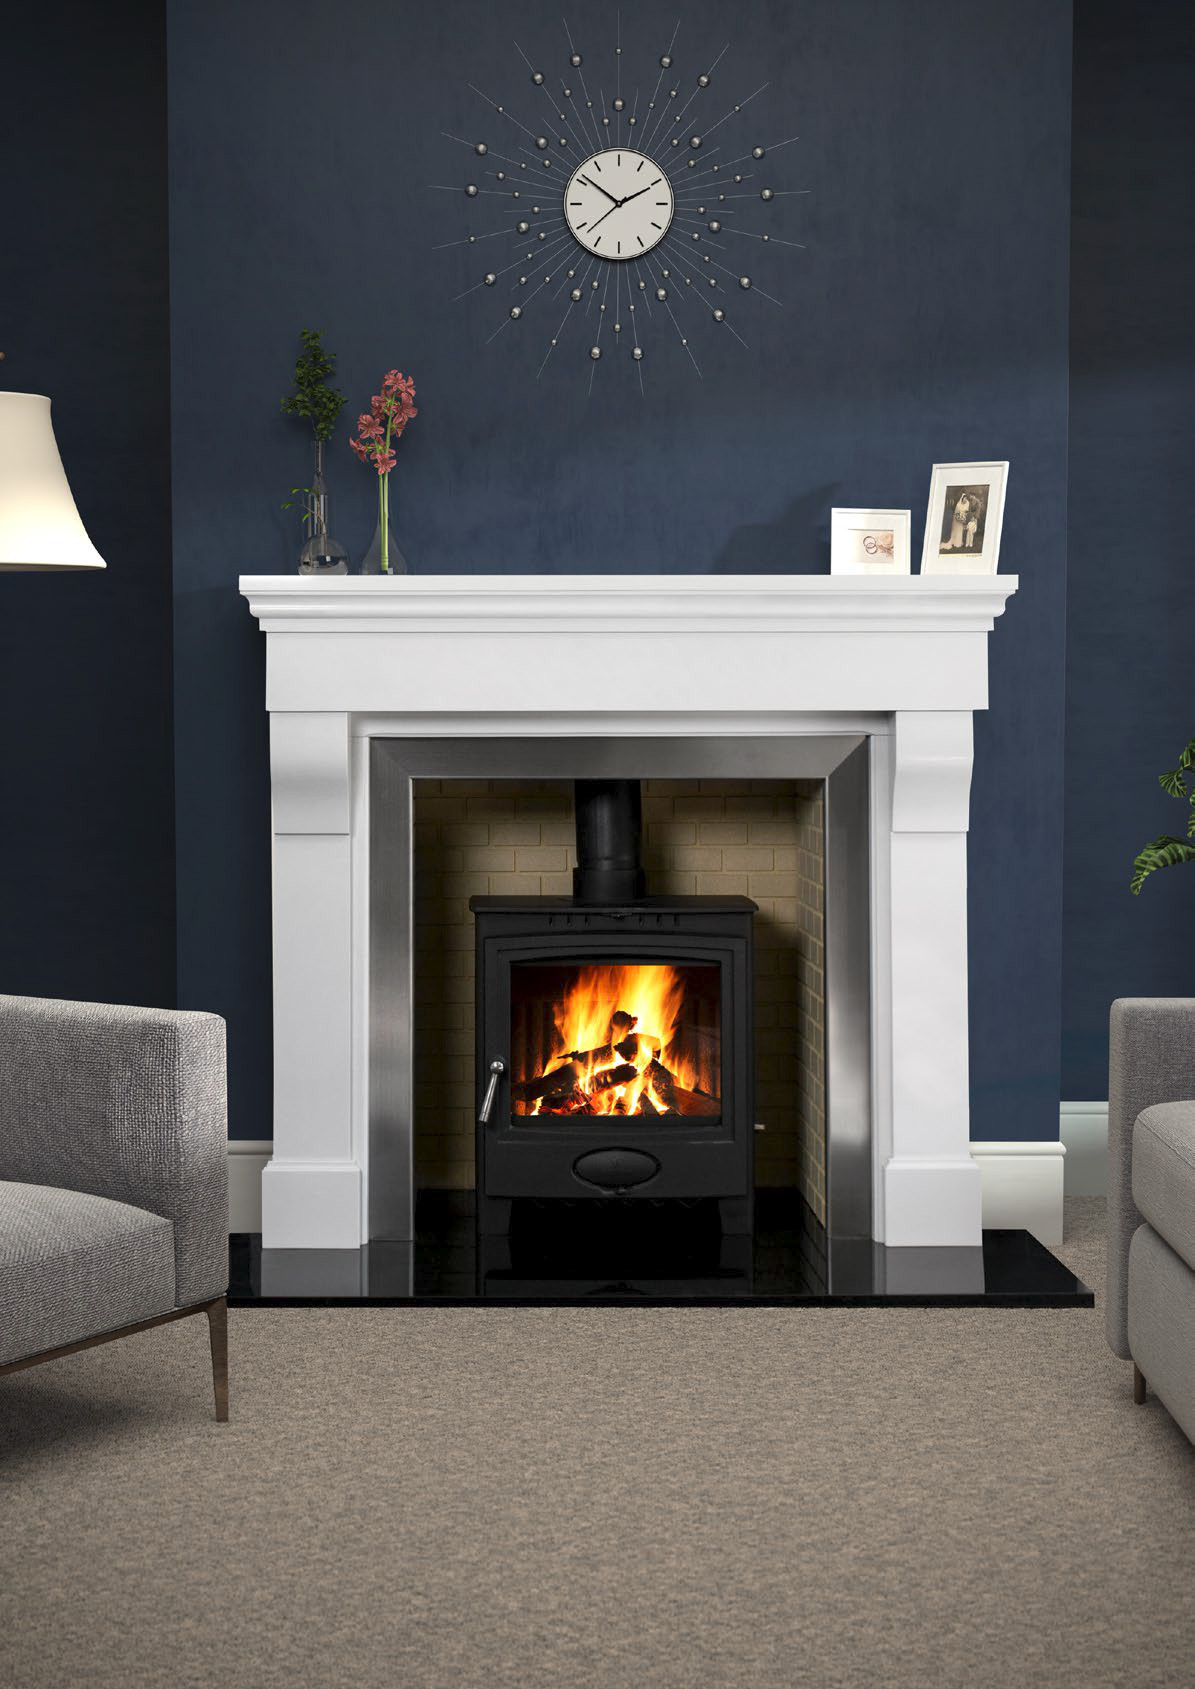 Gms Cabra Flames Amp Fireplaces Banbridge Belfast